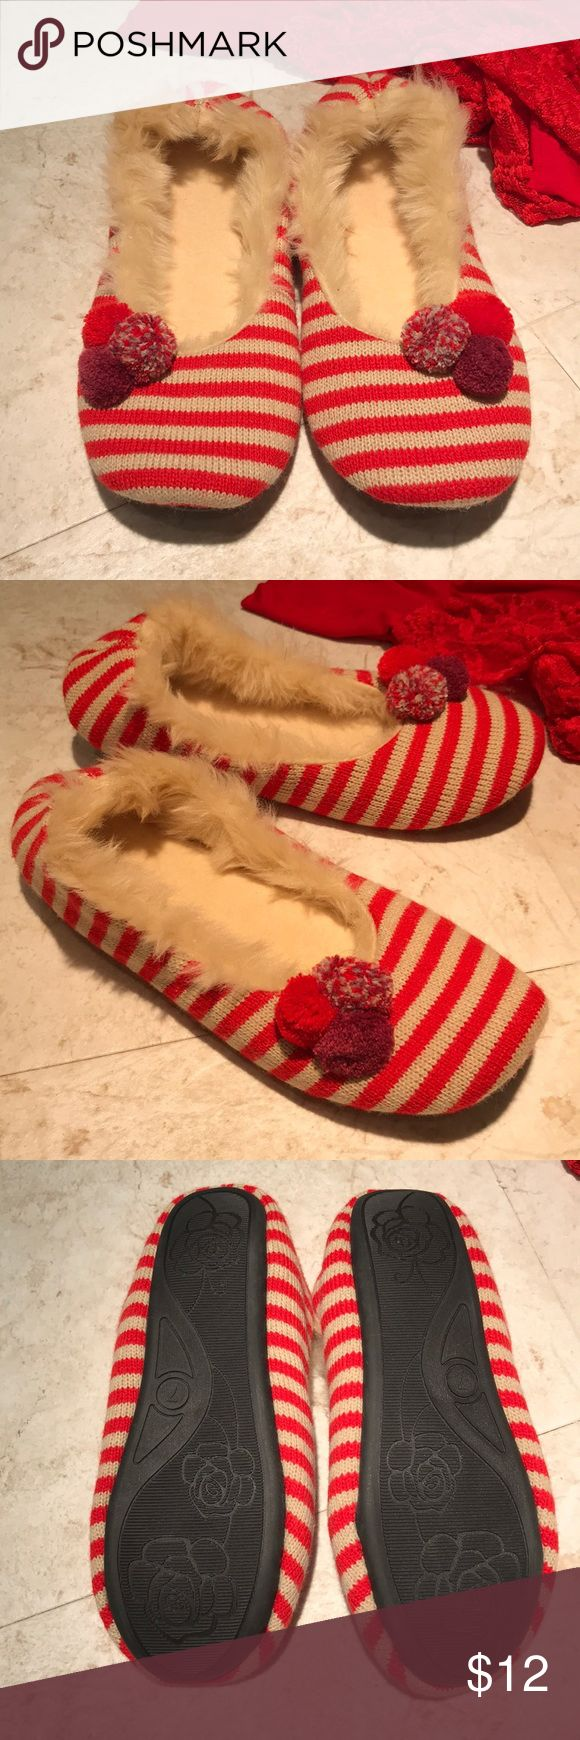 Xhilaration Red & Tan Striped Slippers Size 7 NWOT These house slippers have fun stripes and Pom poms. They feature a very comfy insole and bottoms have slip resistant sole. New without tags. Never worn. Smoke free home. (CR) Xhilaration Shoes Slippers